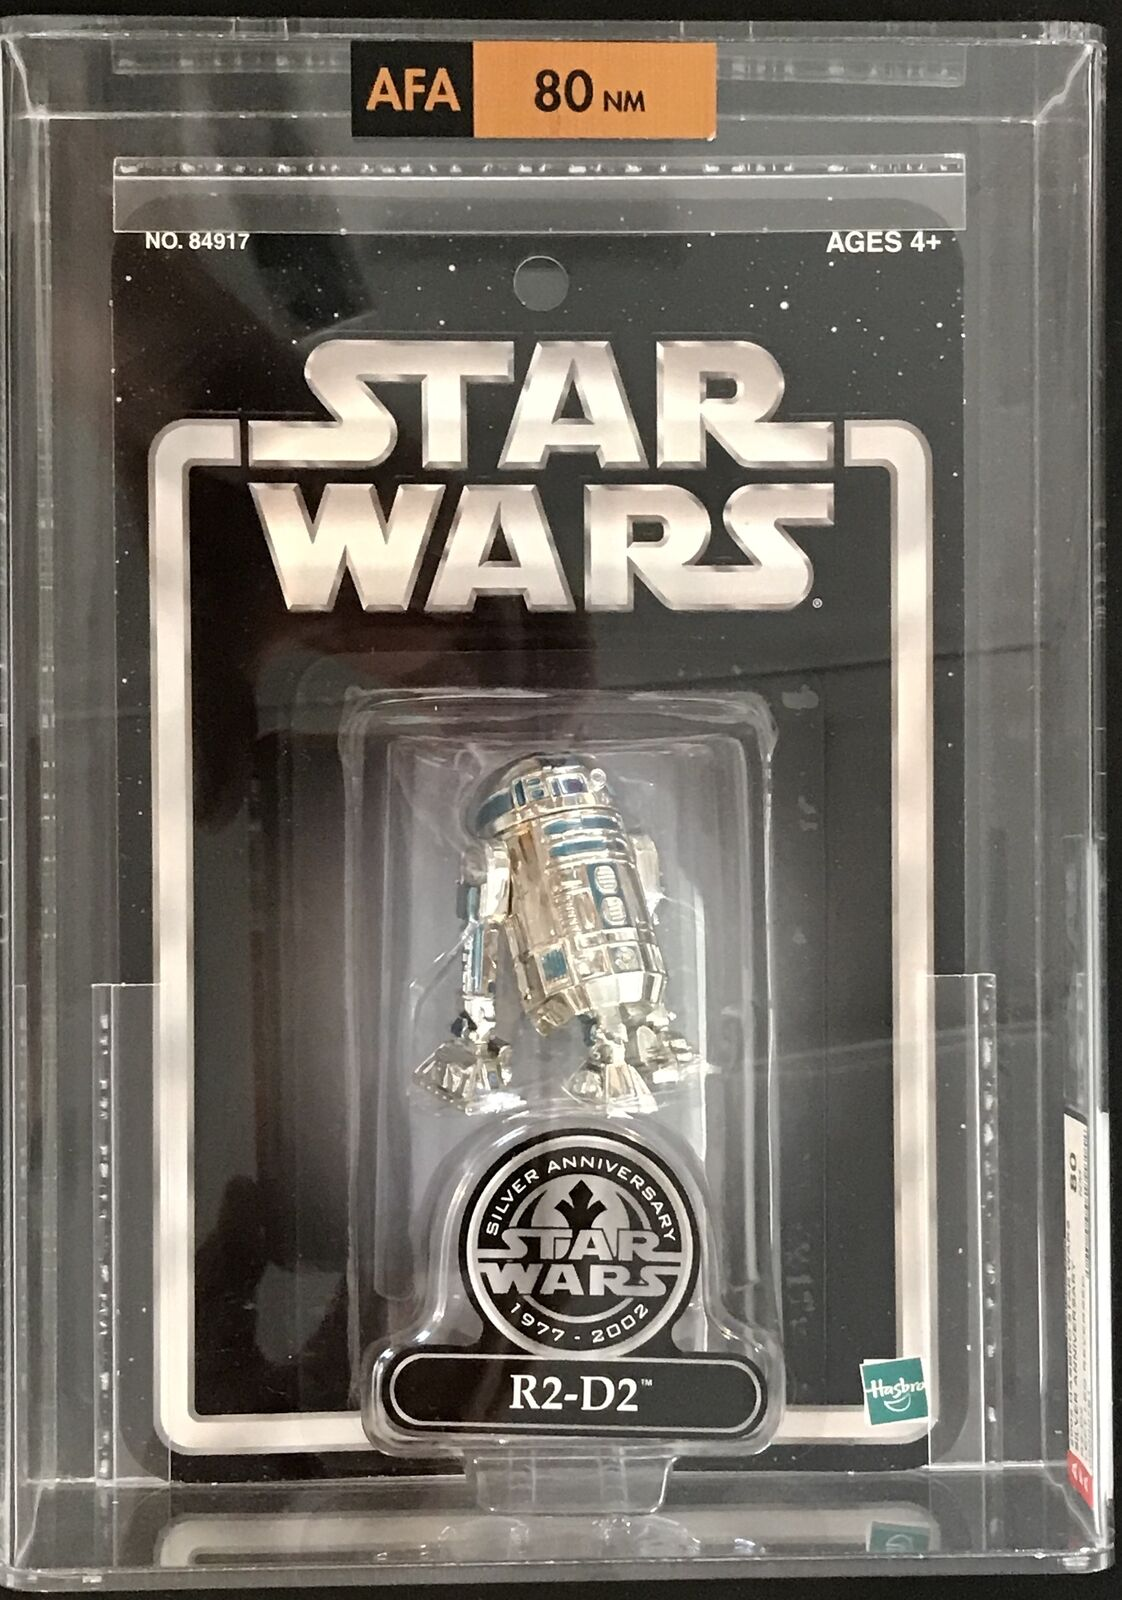 RARE 2002 Star Wars R2-D2 Action Figure ERROR LEFT LEG REVERSED  (AFA 80)